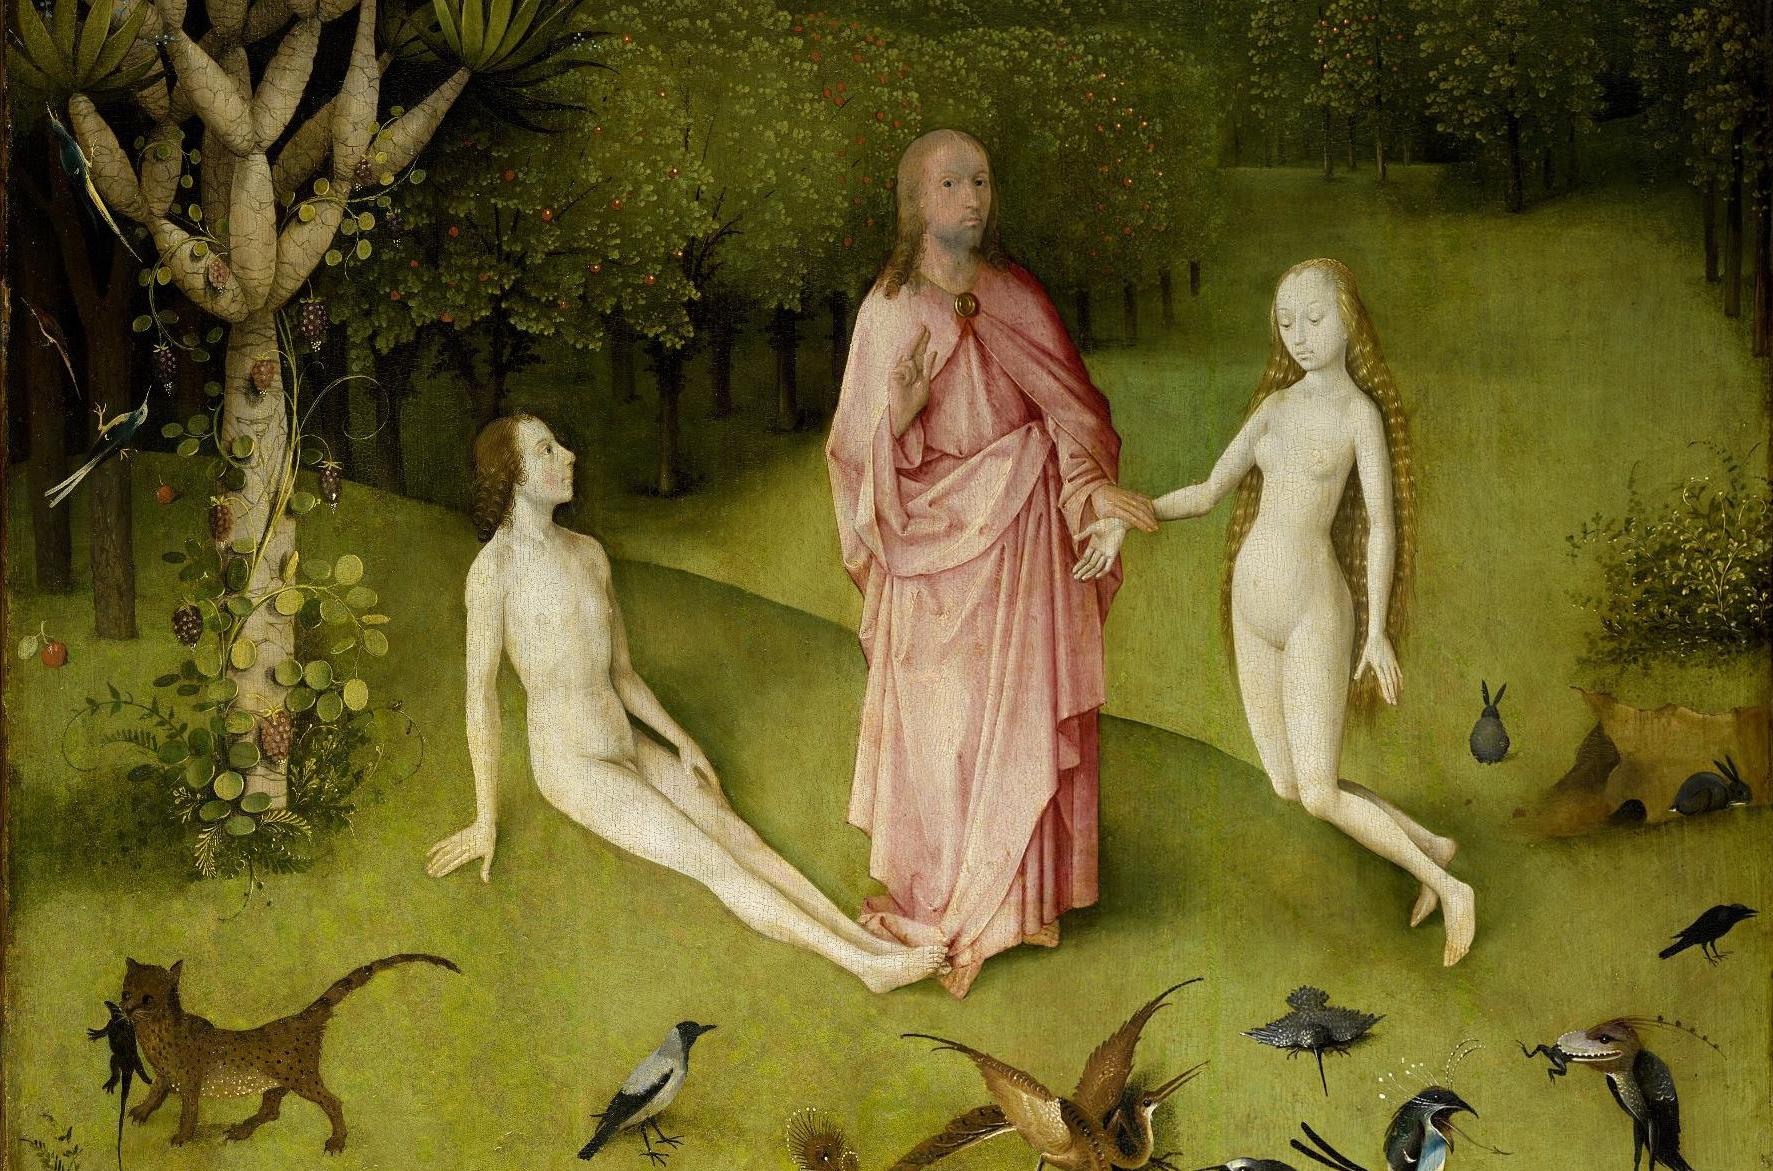 From  The Garden of Earthly Delights , 1480-1505, by Hieronymus Bosch